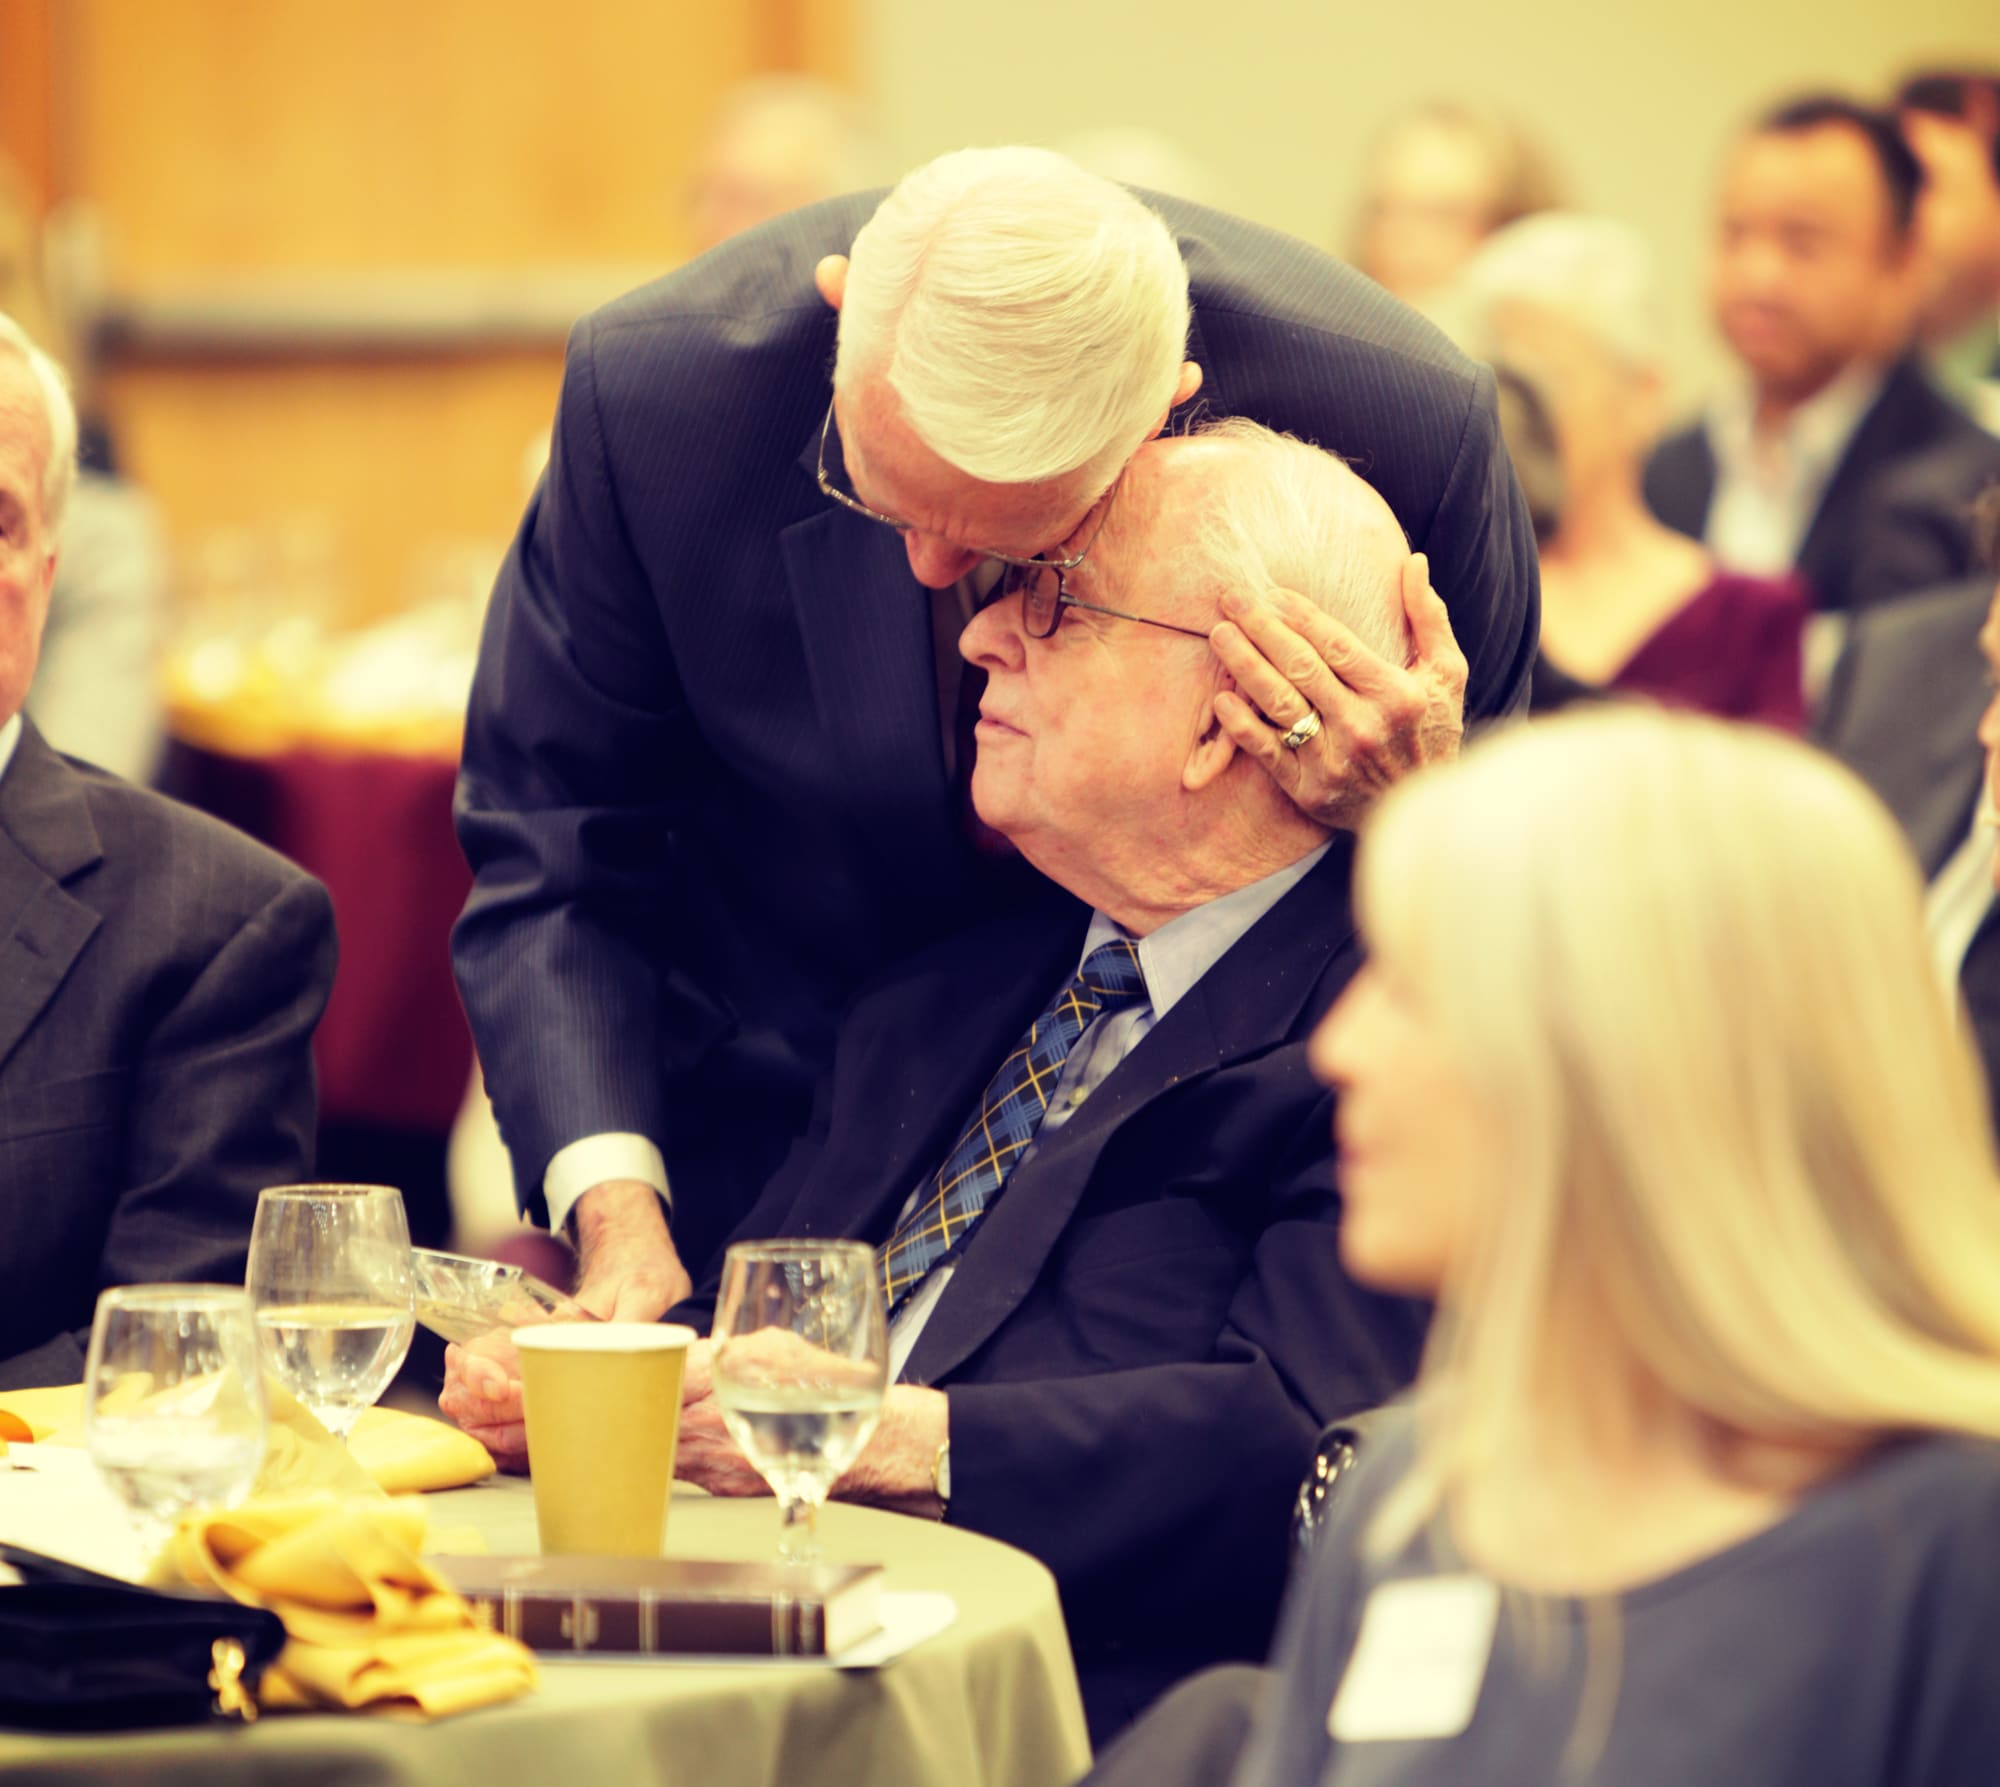 Chuck Swindoll hugging Dr. Campbell during recognition event